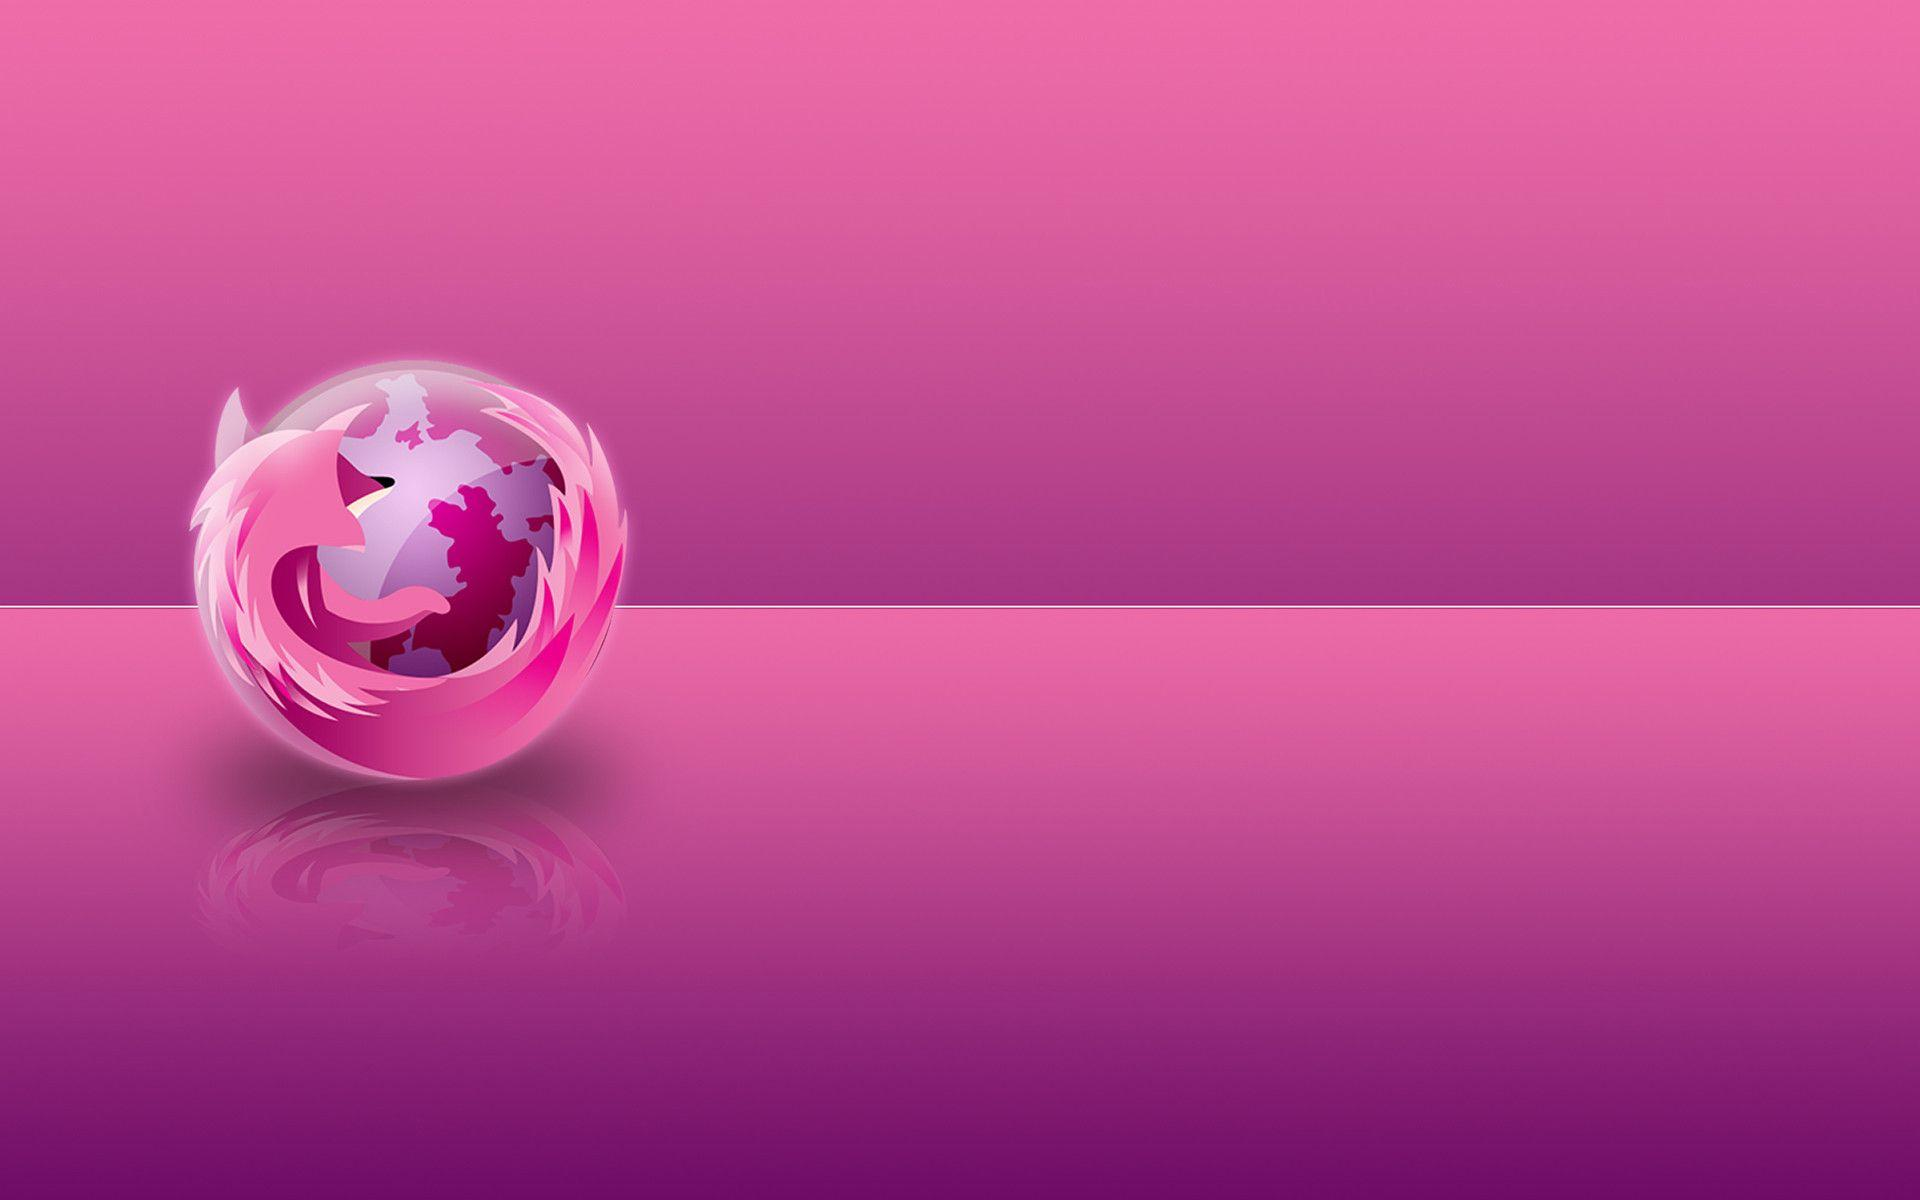 Firefox Backgrounds Themes - Wallpaper Cave